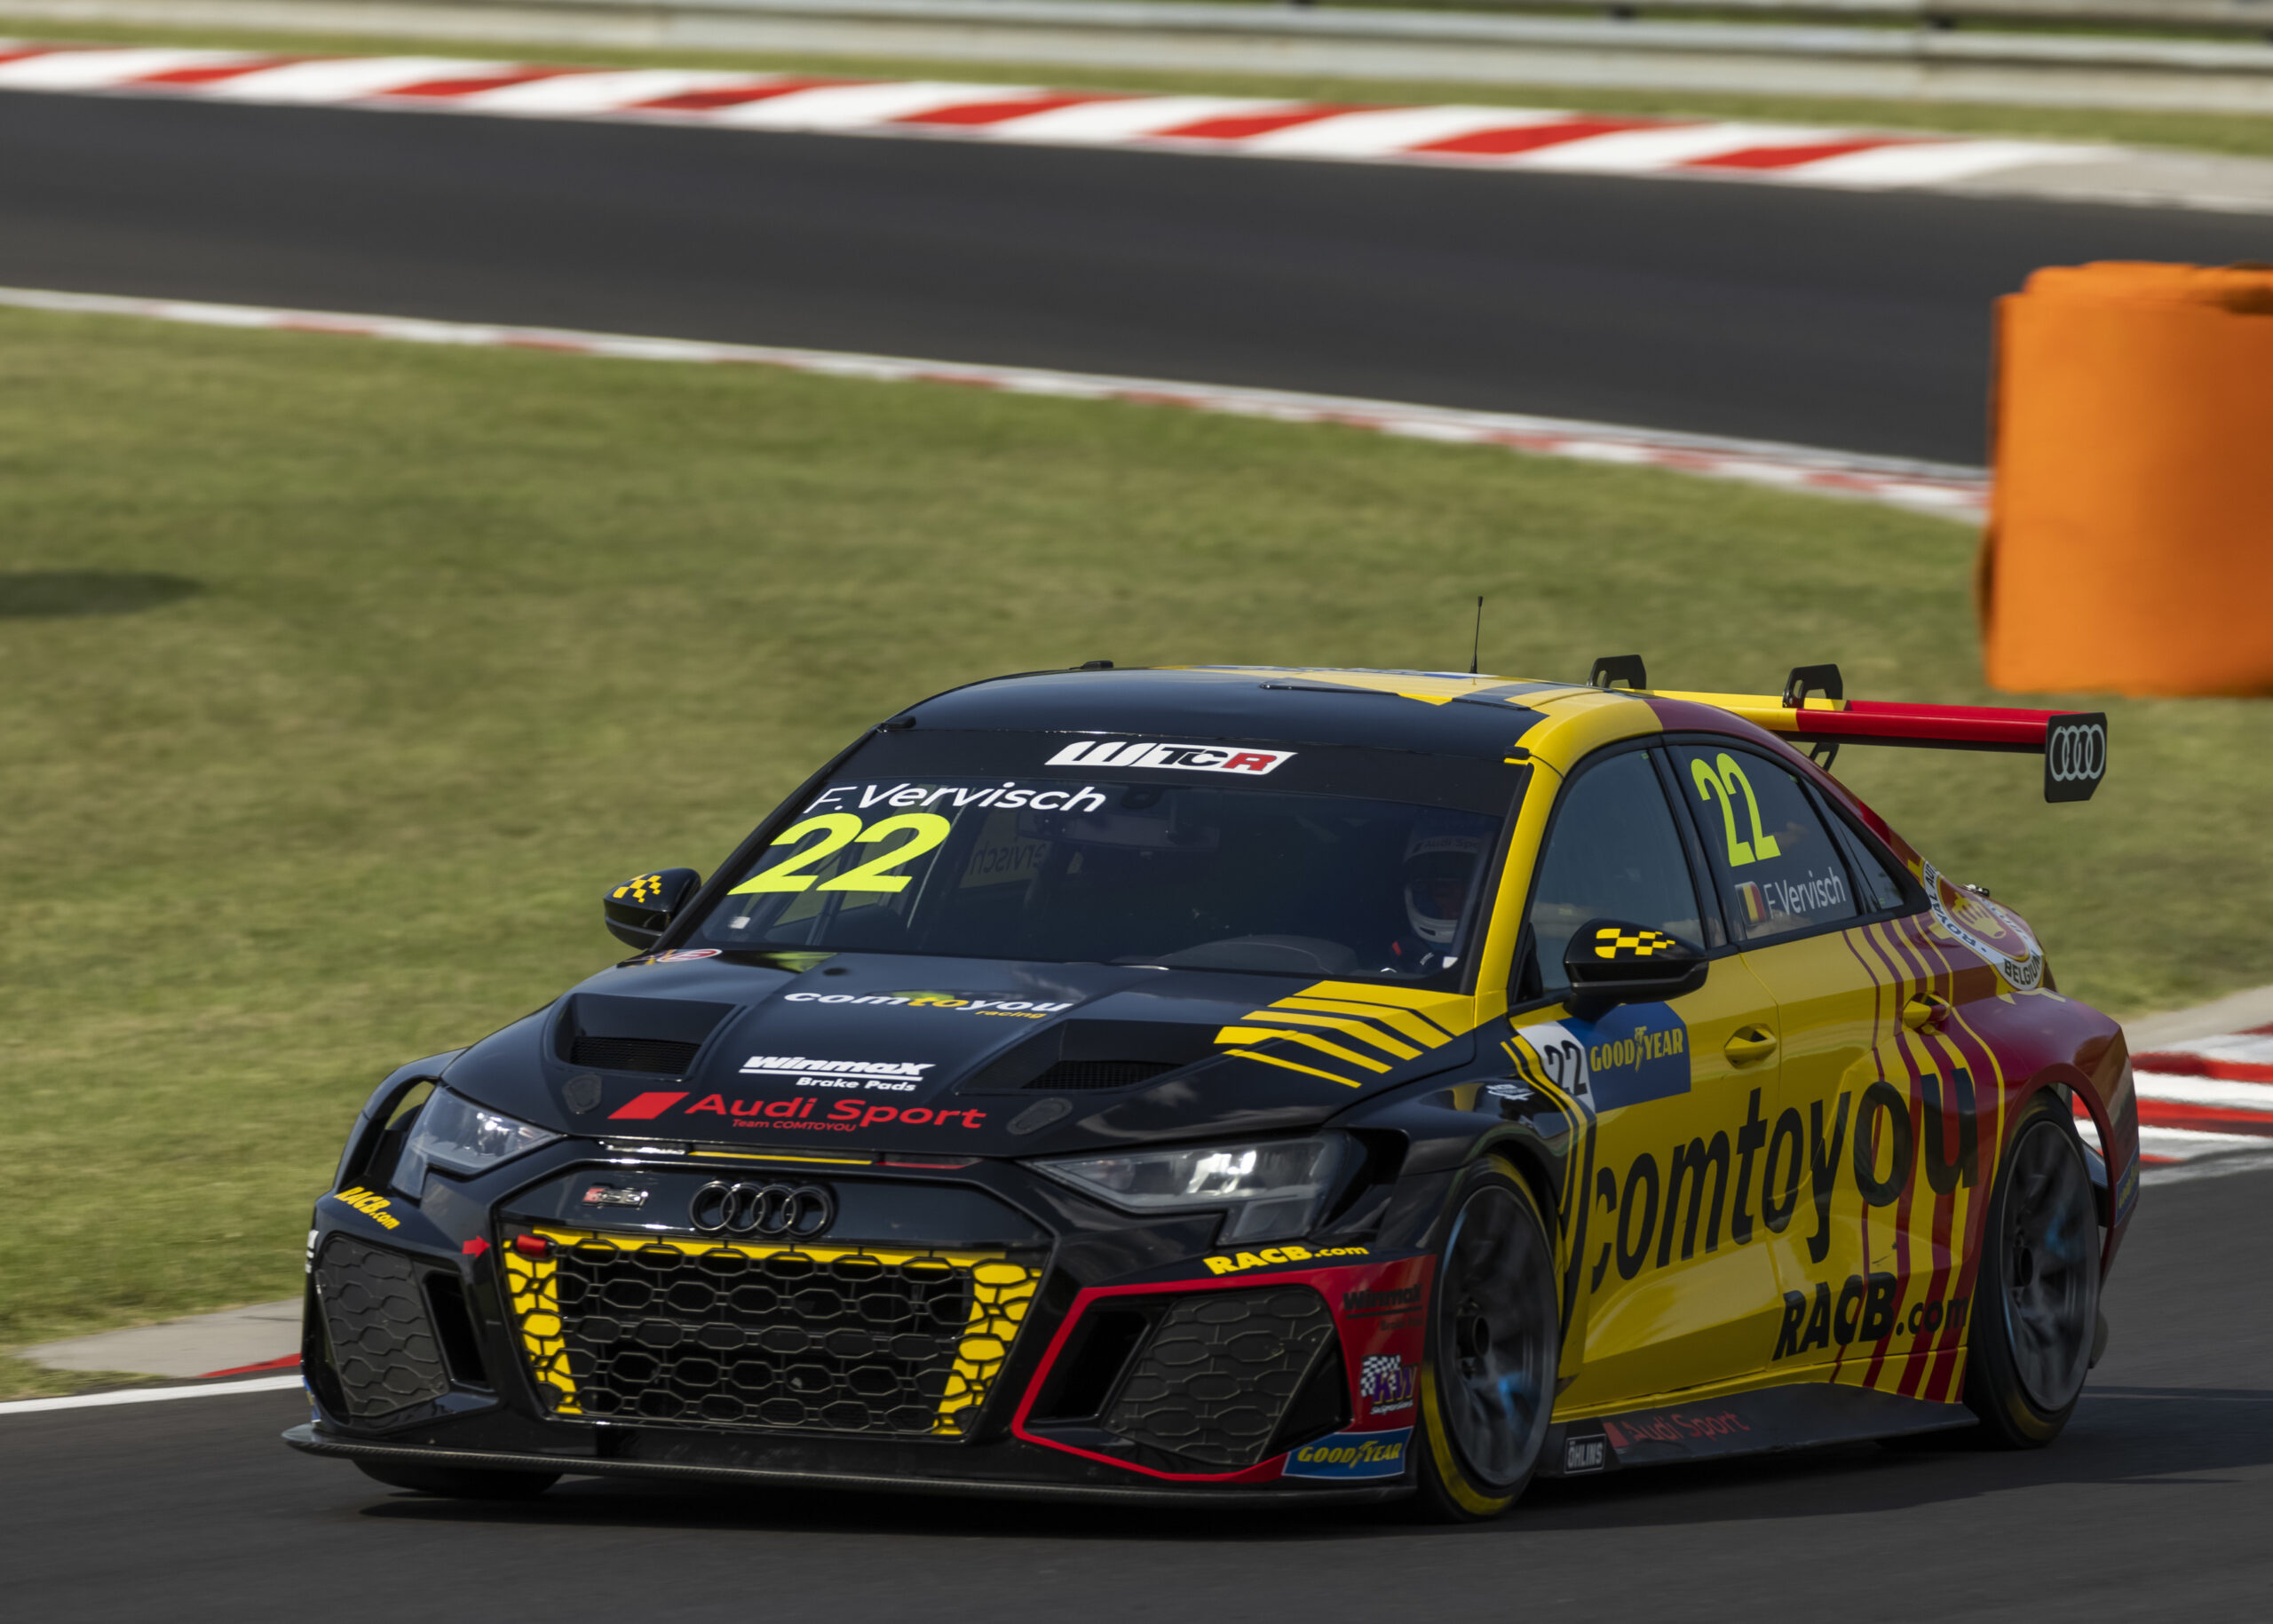 WTCR – FIA World Touring Car Cup 2021